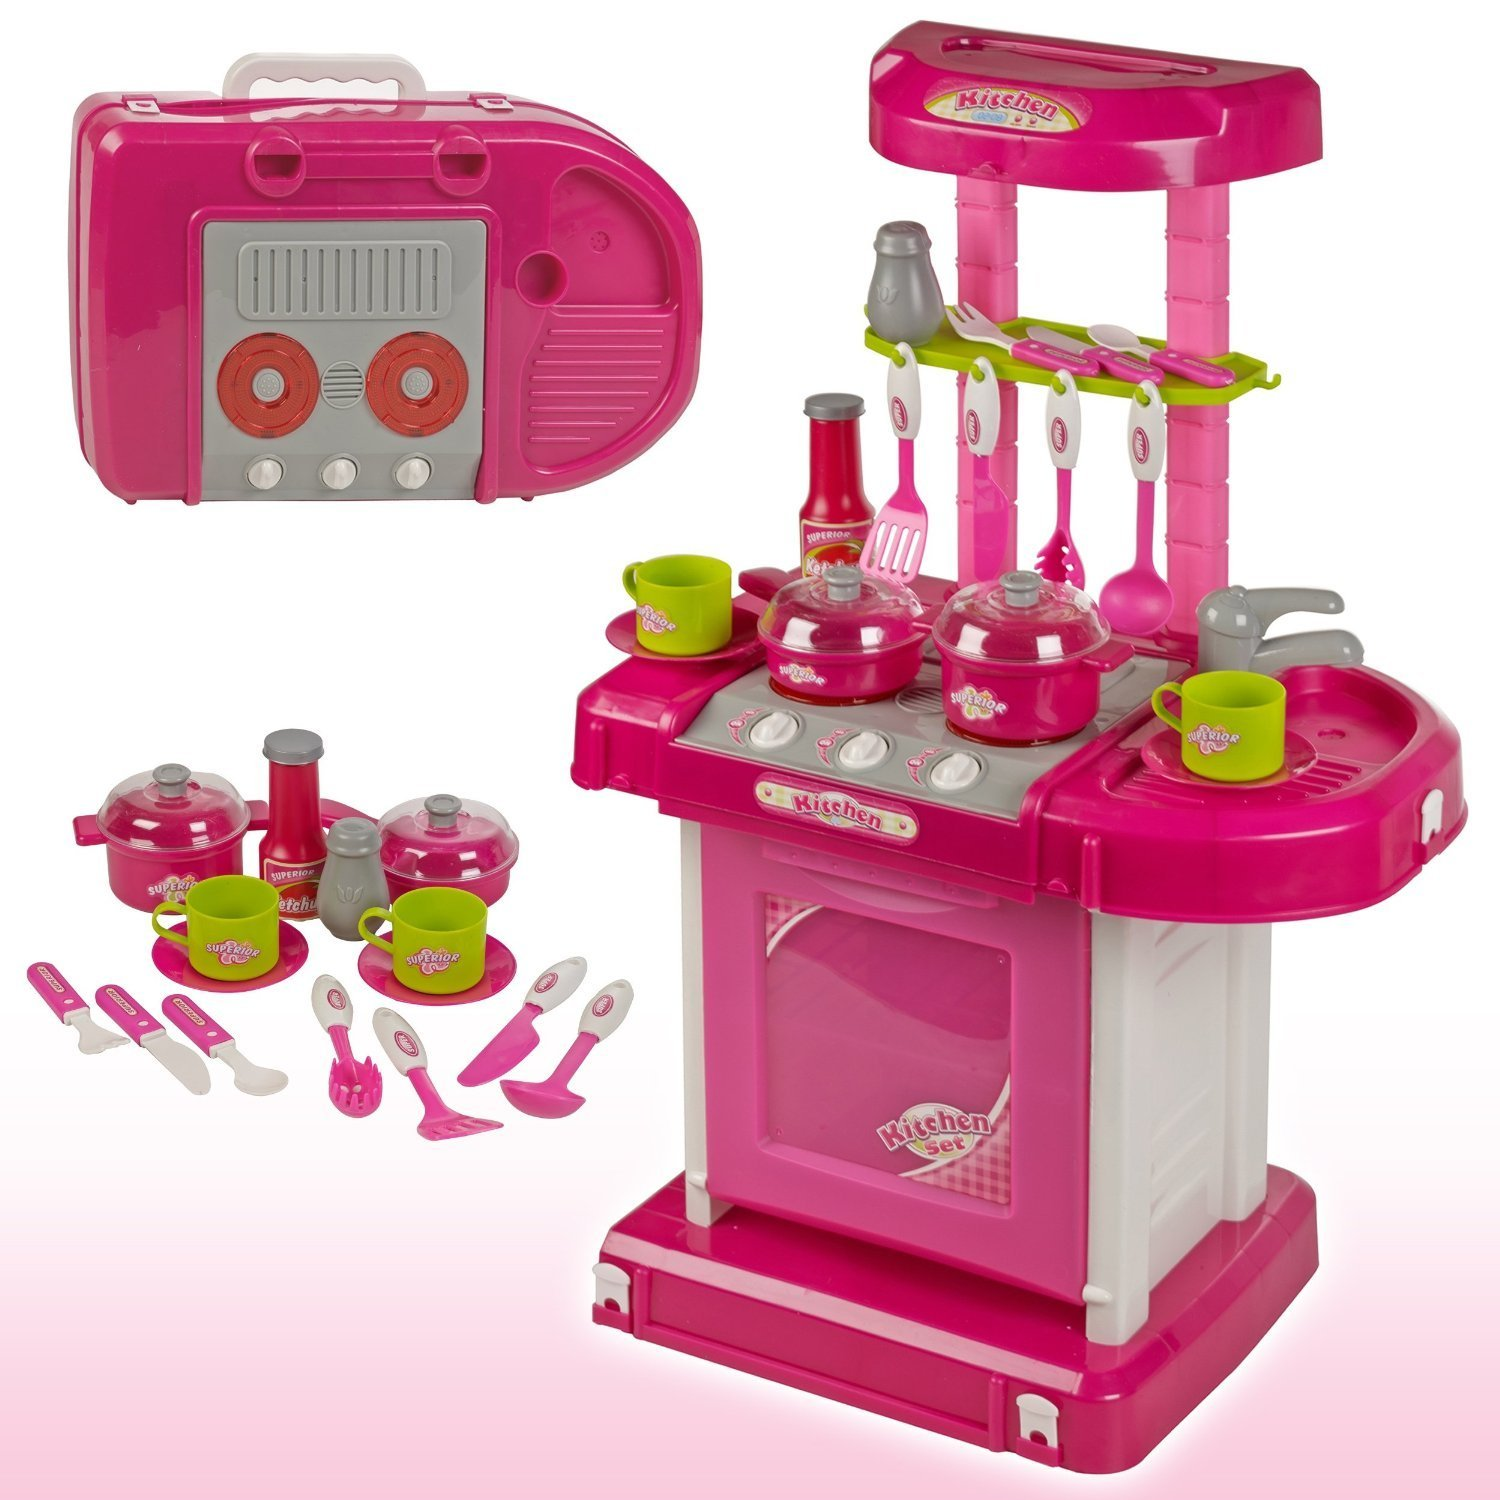 Buy top toys luxury battery operated kitchen play set for kids online at low prices in india amazon in